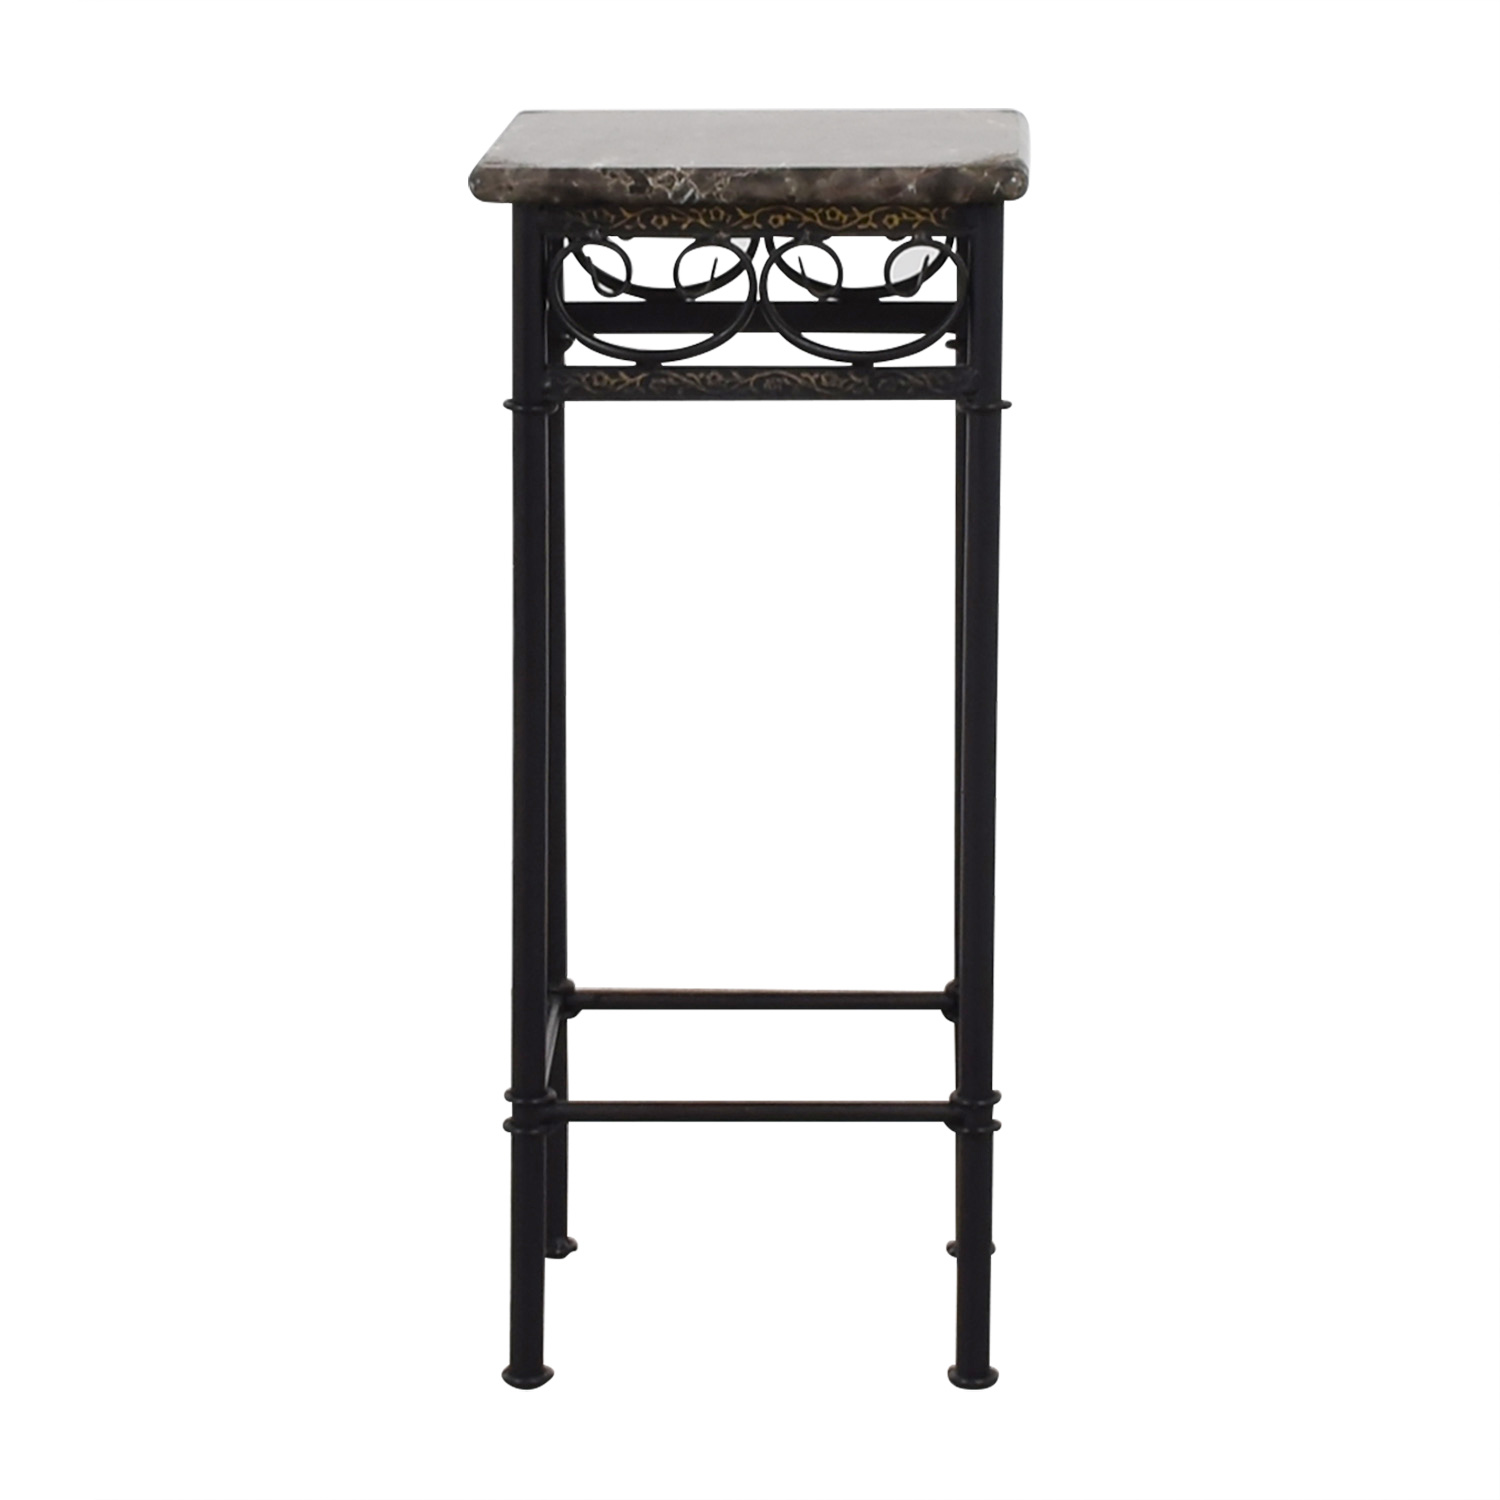 marble accent table limetennis faux with black metal base signy drum tables patio chair cushions winsome nightstand espresso ethan allen end drawer ballard designs stools small